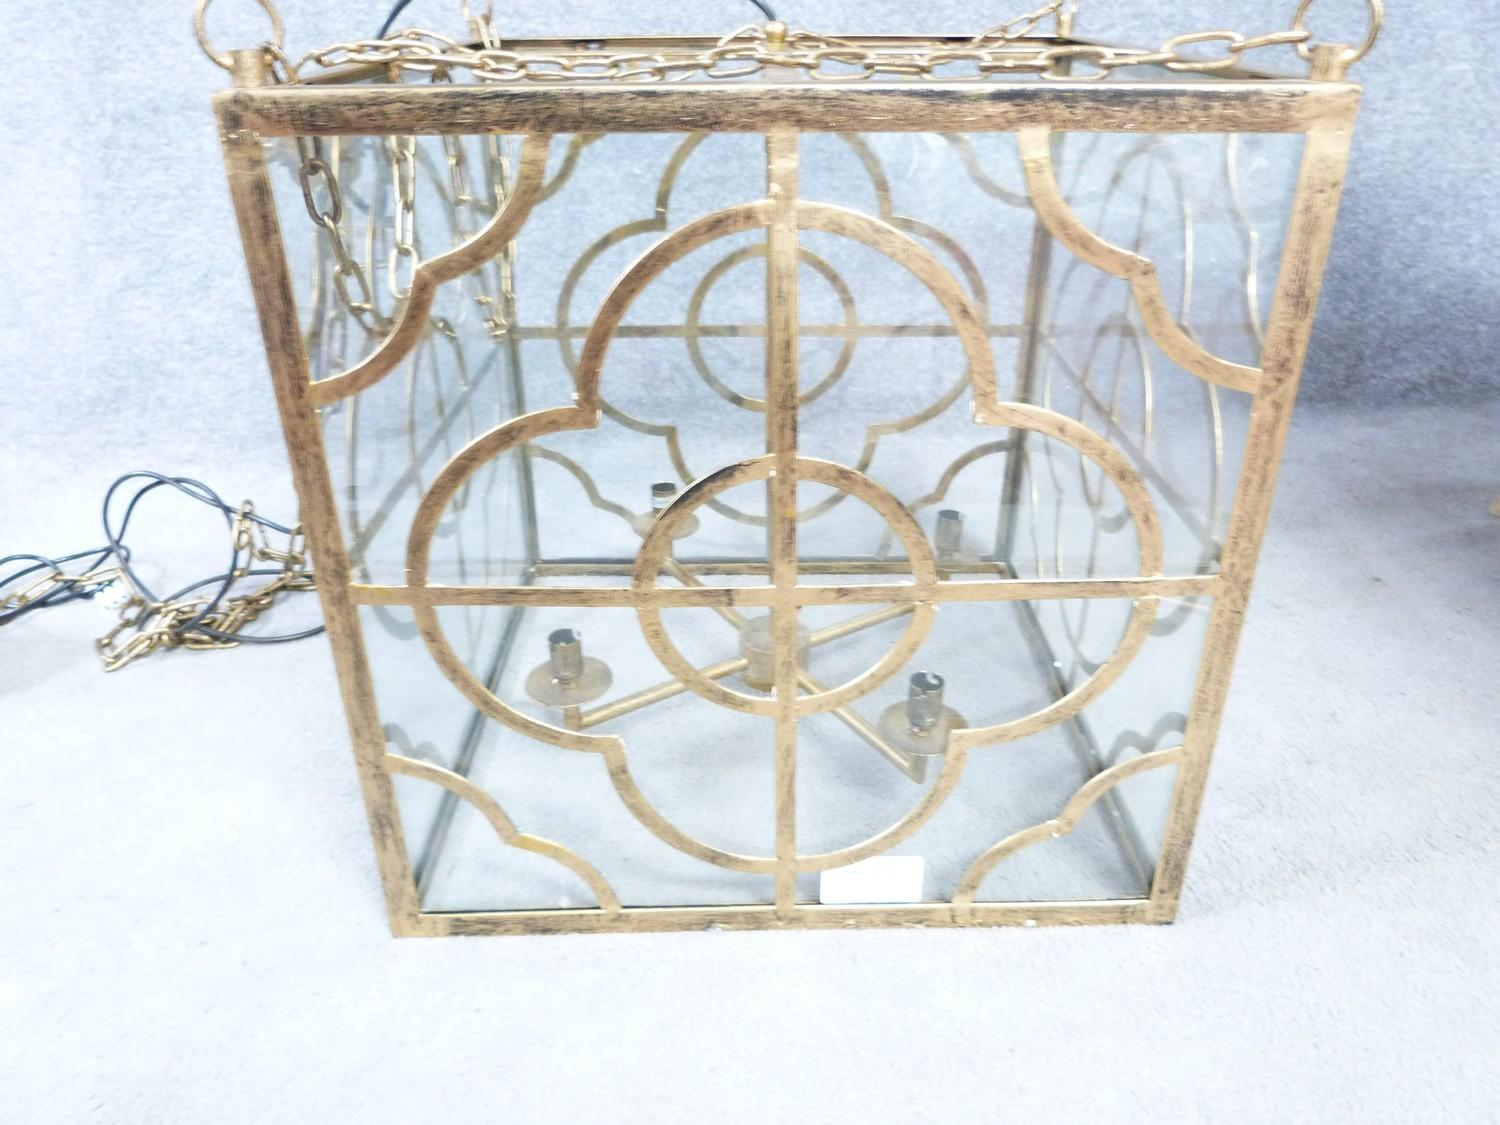 A Julian Chichester gold 'Anna' design pierced metal hanging ceiling lantern with stylised floral - Image 5 of 8